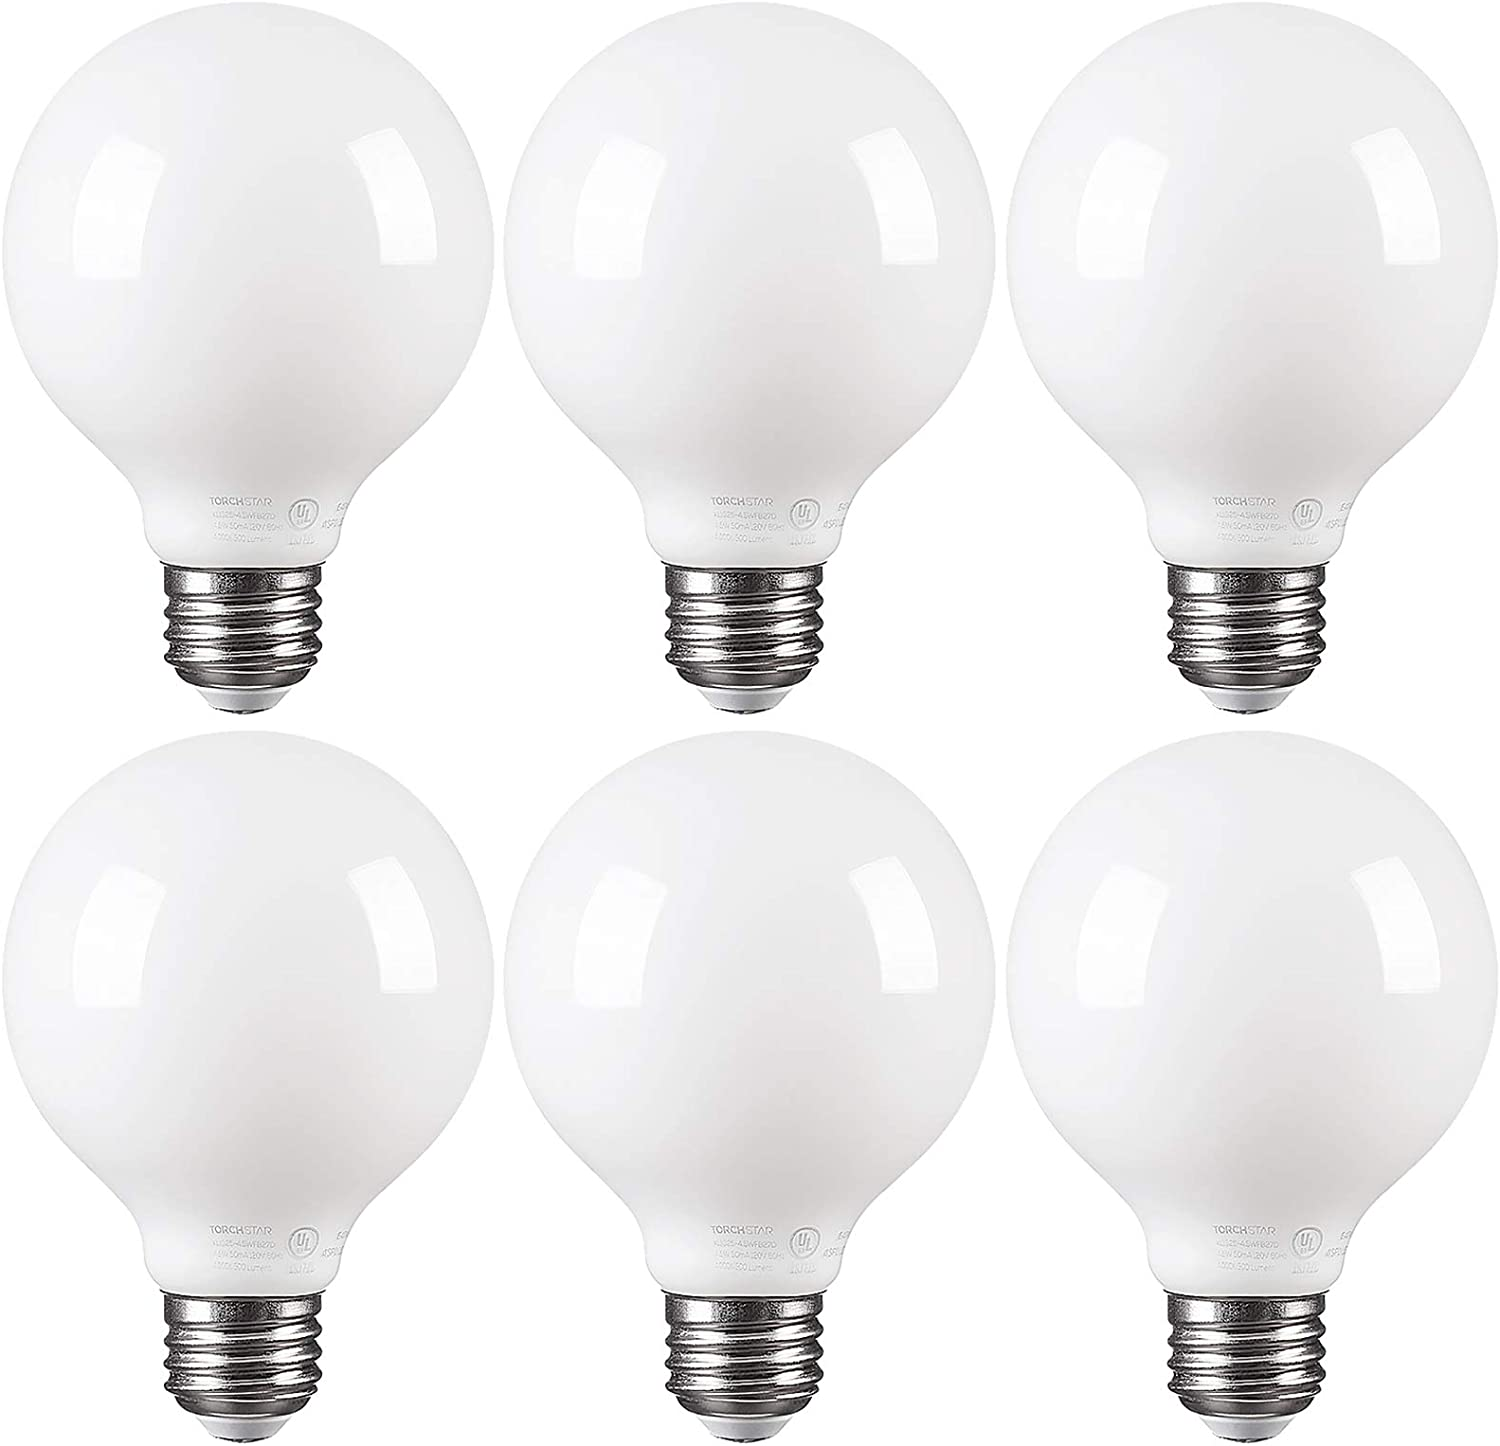 TORCHSTAR LED Dimmable Frosted Filament G25 Light Bulb, 4.5W (60W Eqv.) Omni Directional Lighting Globe Bulb, UL-Listed, 4000K Cool White, 500lm, E26 Base, 2 Years Warranty, Pack of 6